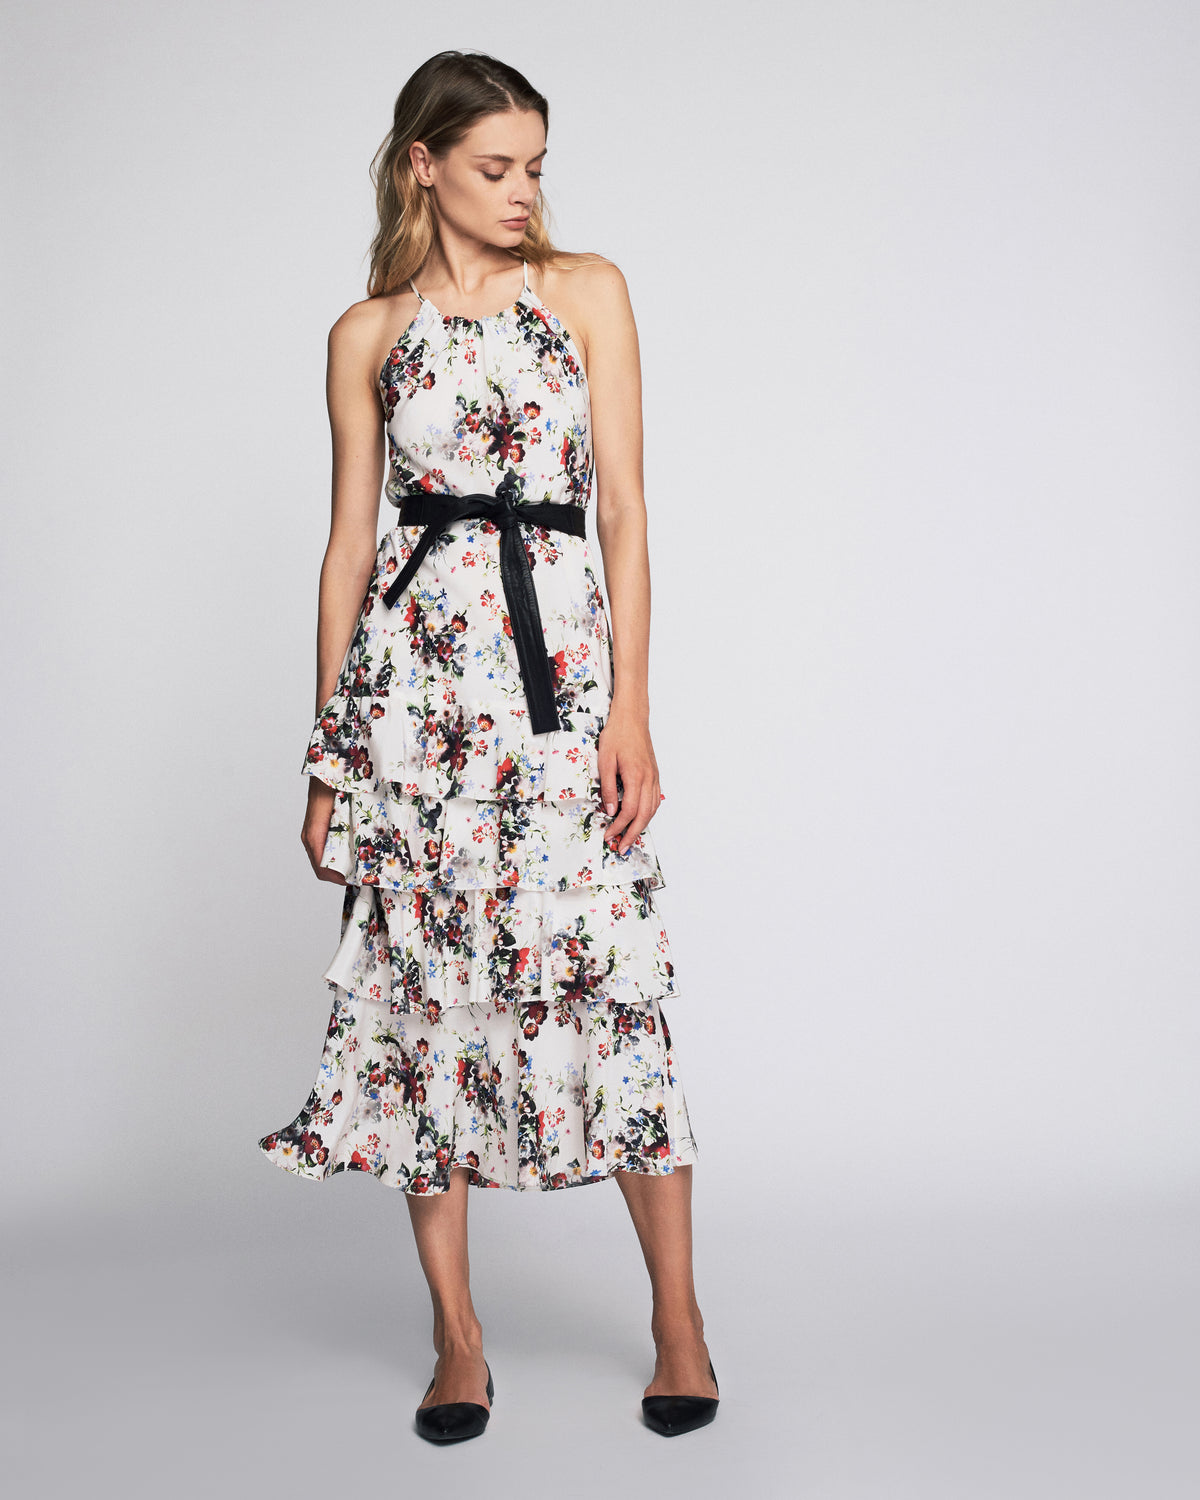 Everleigh Print Dress In White Shadow Floral